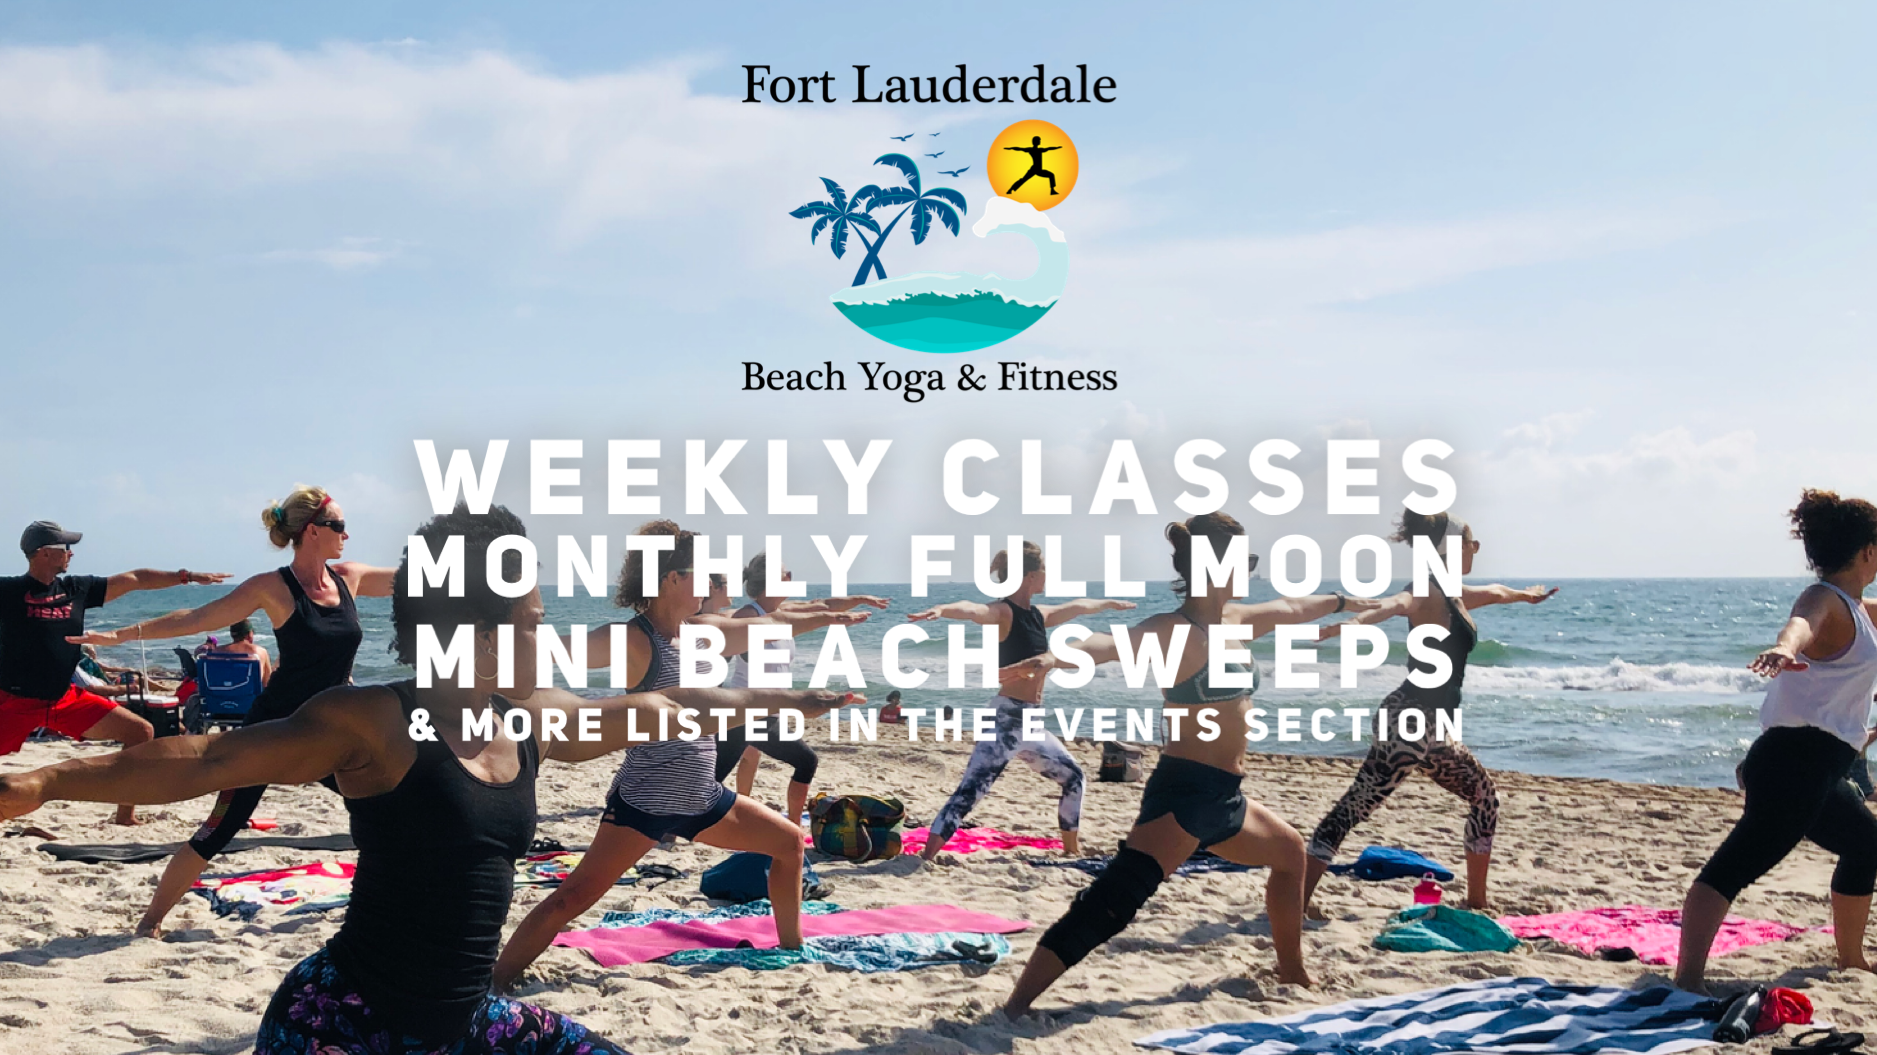 Fort Lauderdale Beach Yoga, Meditation & Fitness by Donation